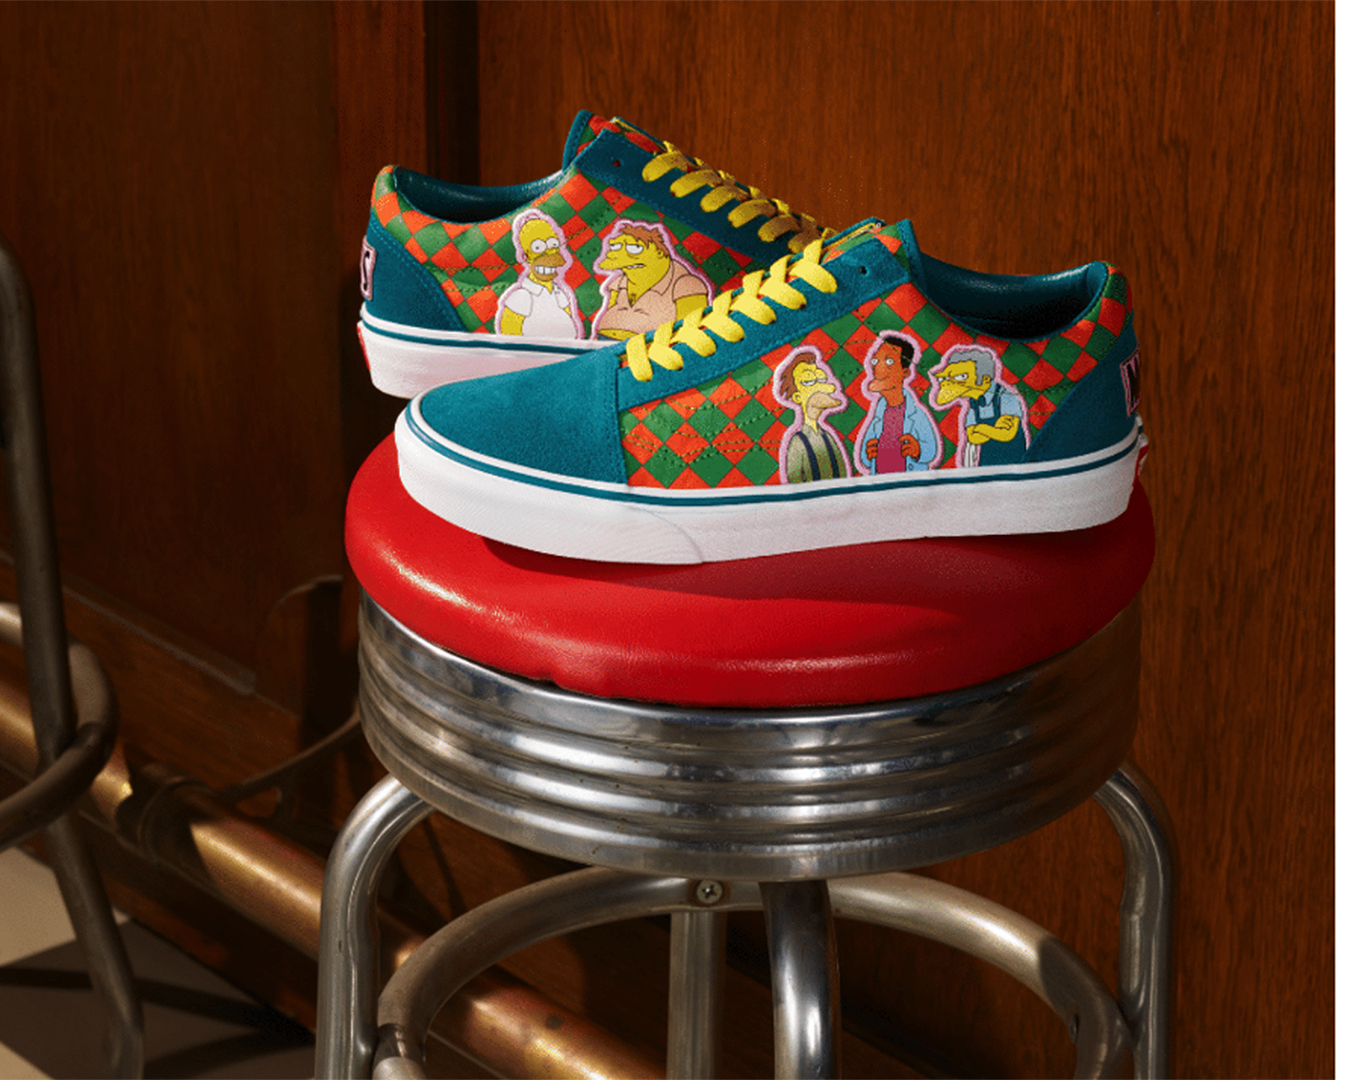 Vans Lace-up high top featuring reprobates from Moe's tavern on the sides.